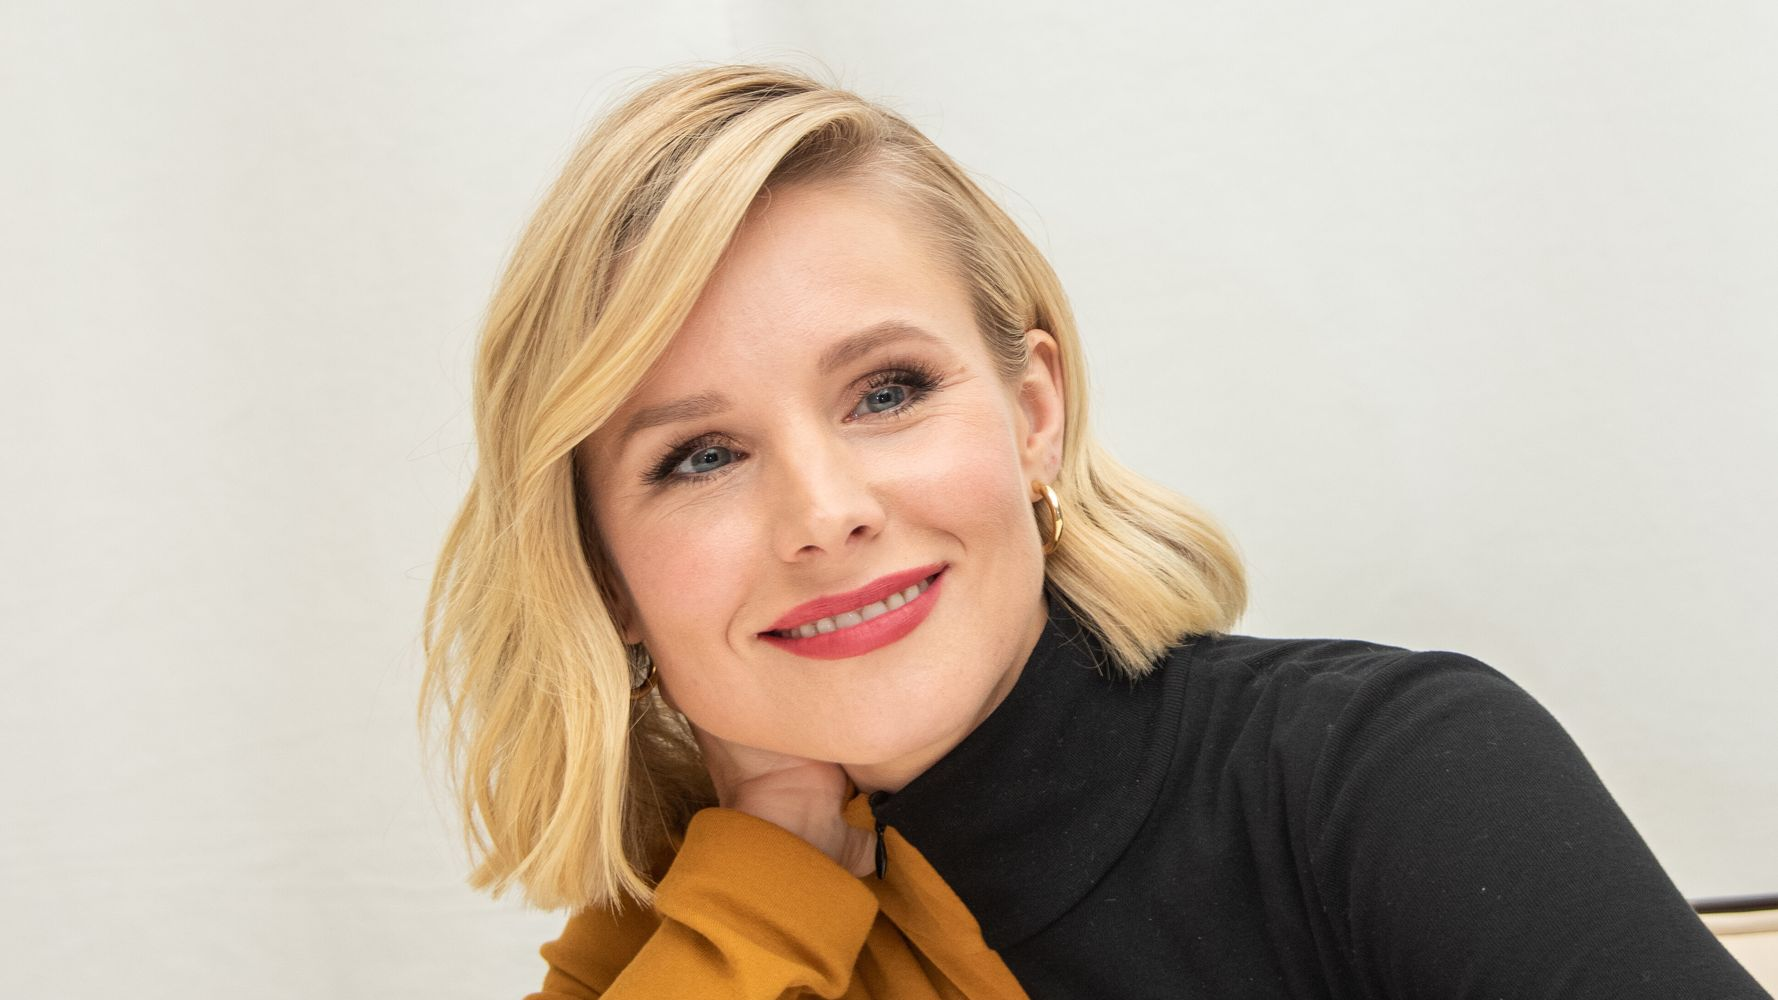 Kristen Bell Reveals The Reason Why She Hides Her Kids' Faces On Social Media